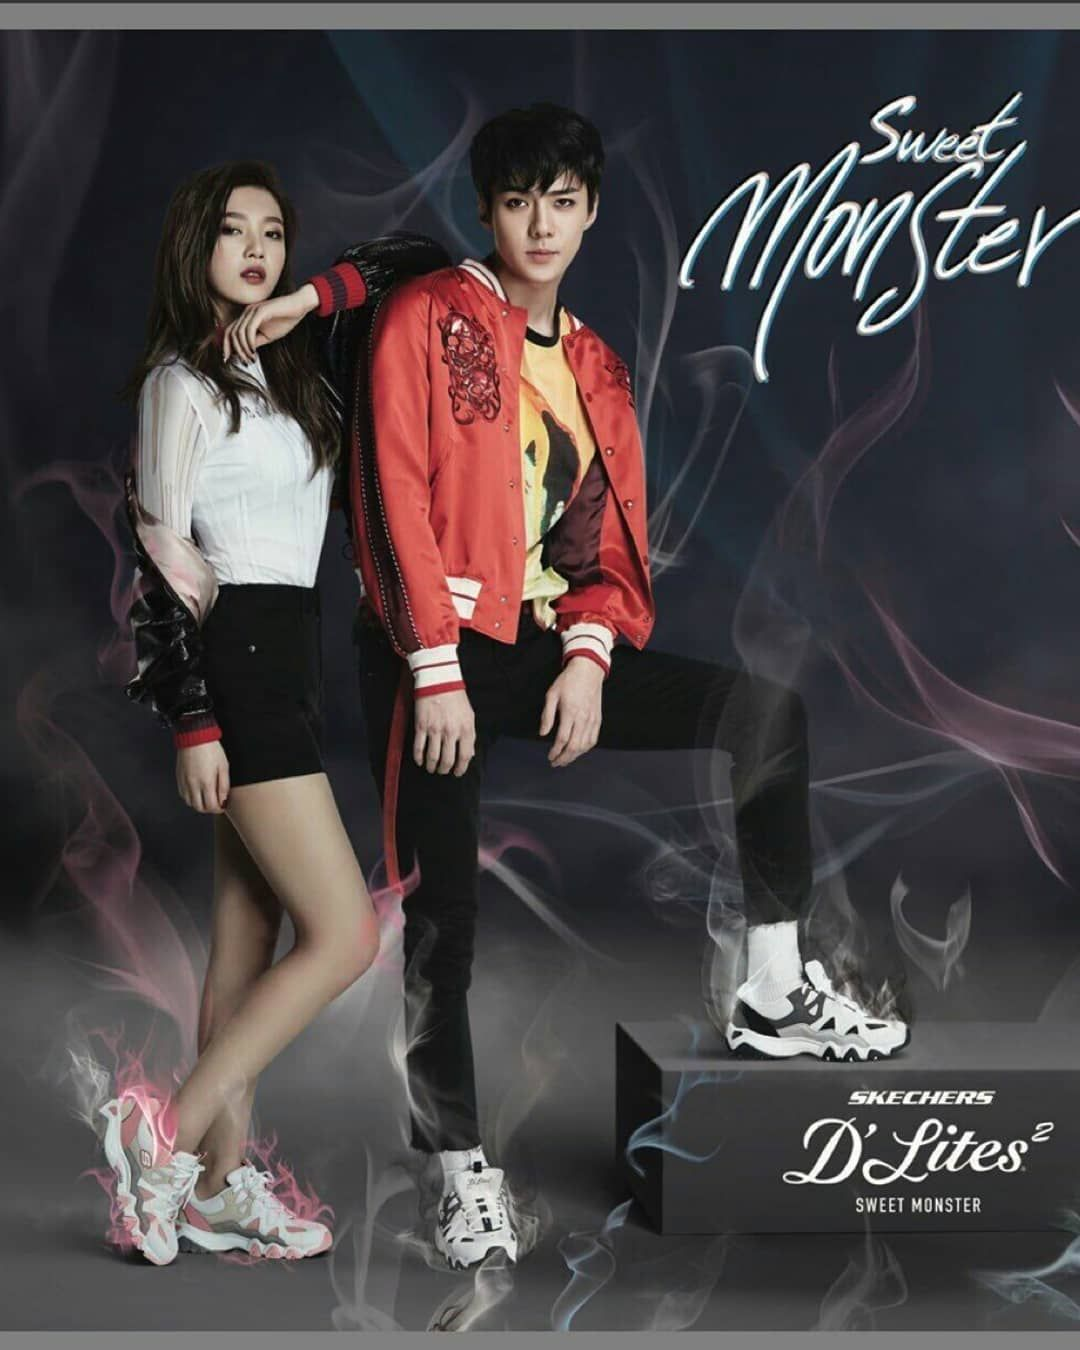 EXO with Red Velvet Skechers D'Lite 2 Sweet Monster